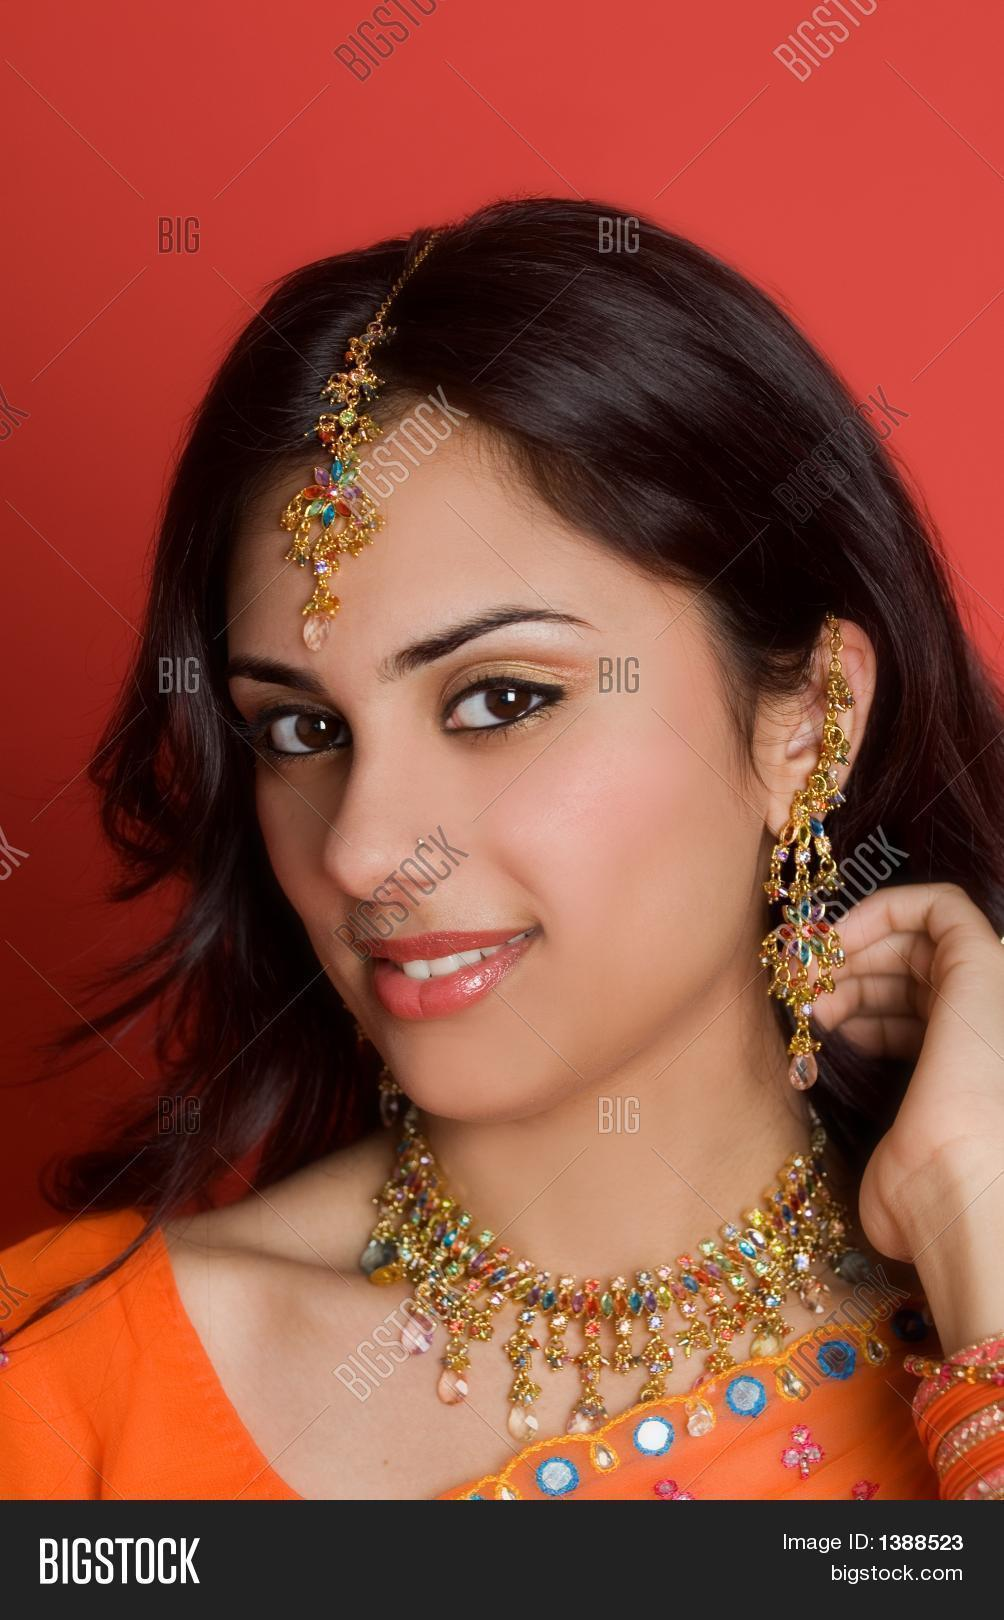 kaweah hindu single women Hindu women connecting singles is a 100% free hindu singles site where you can make friends and meet hindu women find an activity partner, new friends, a cool date or a soulmate, for a casual or long term relationship.